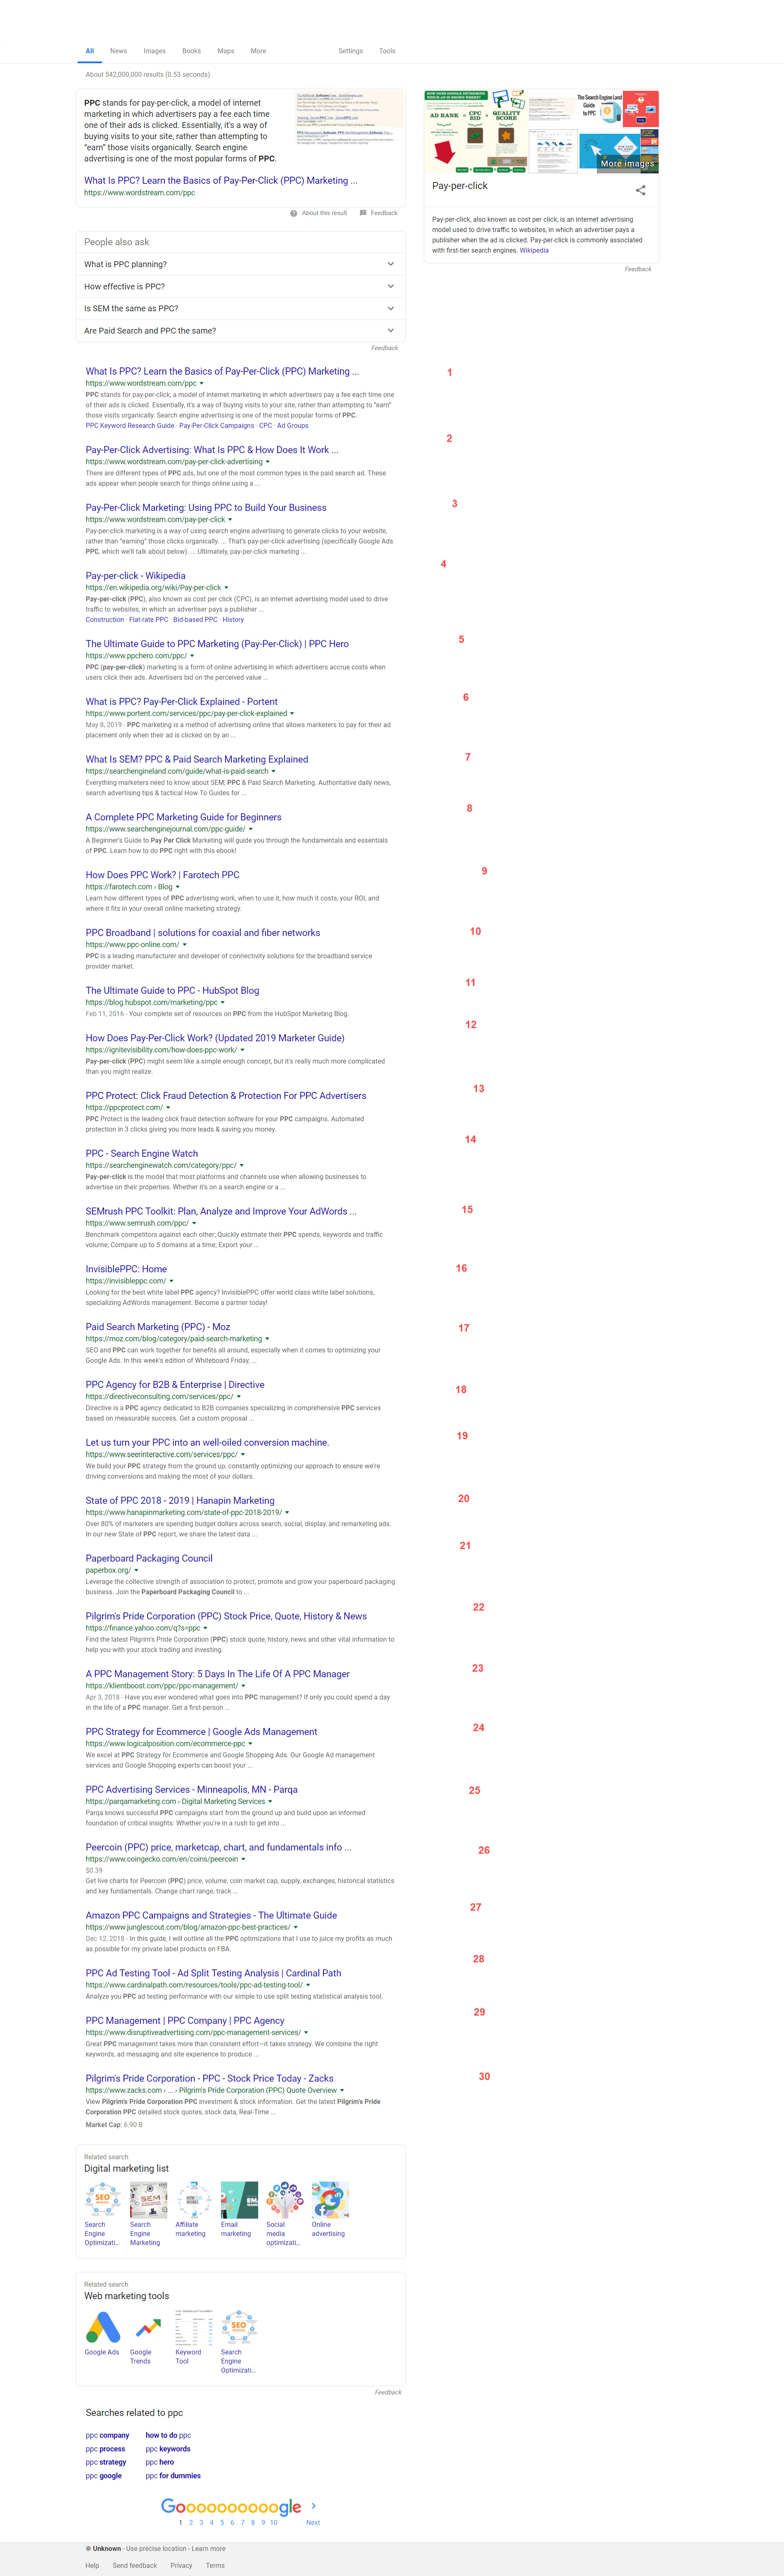 Google Displays an Unusual SERP With 30 Results